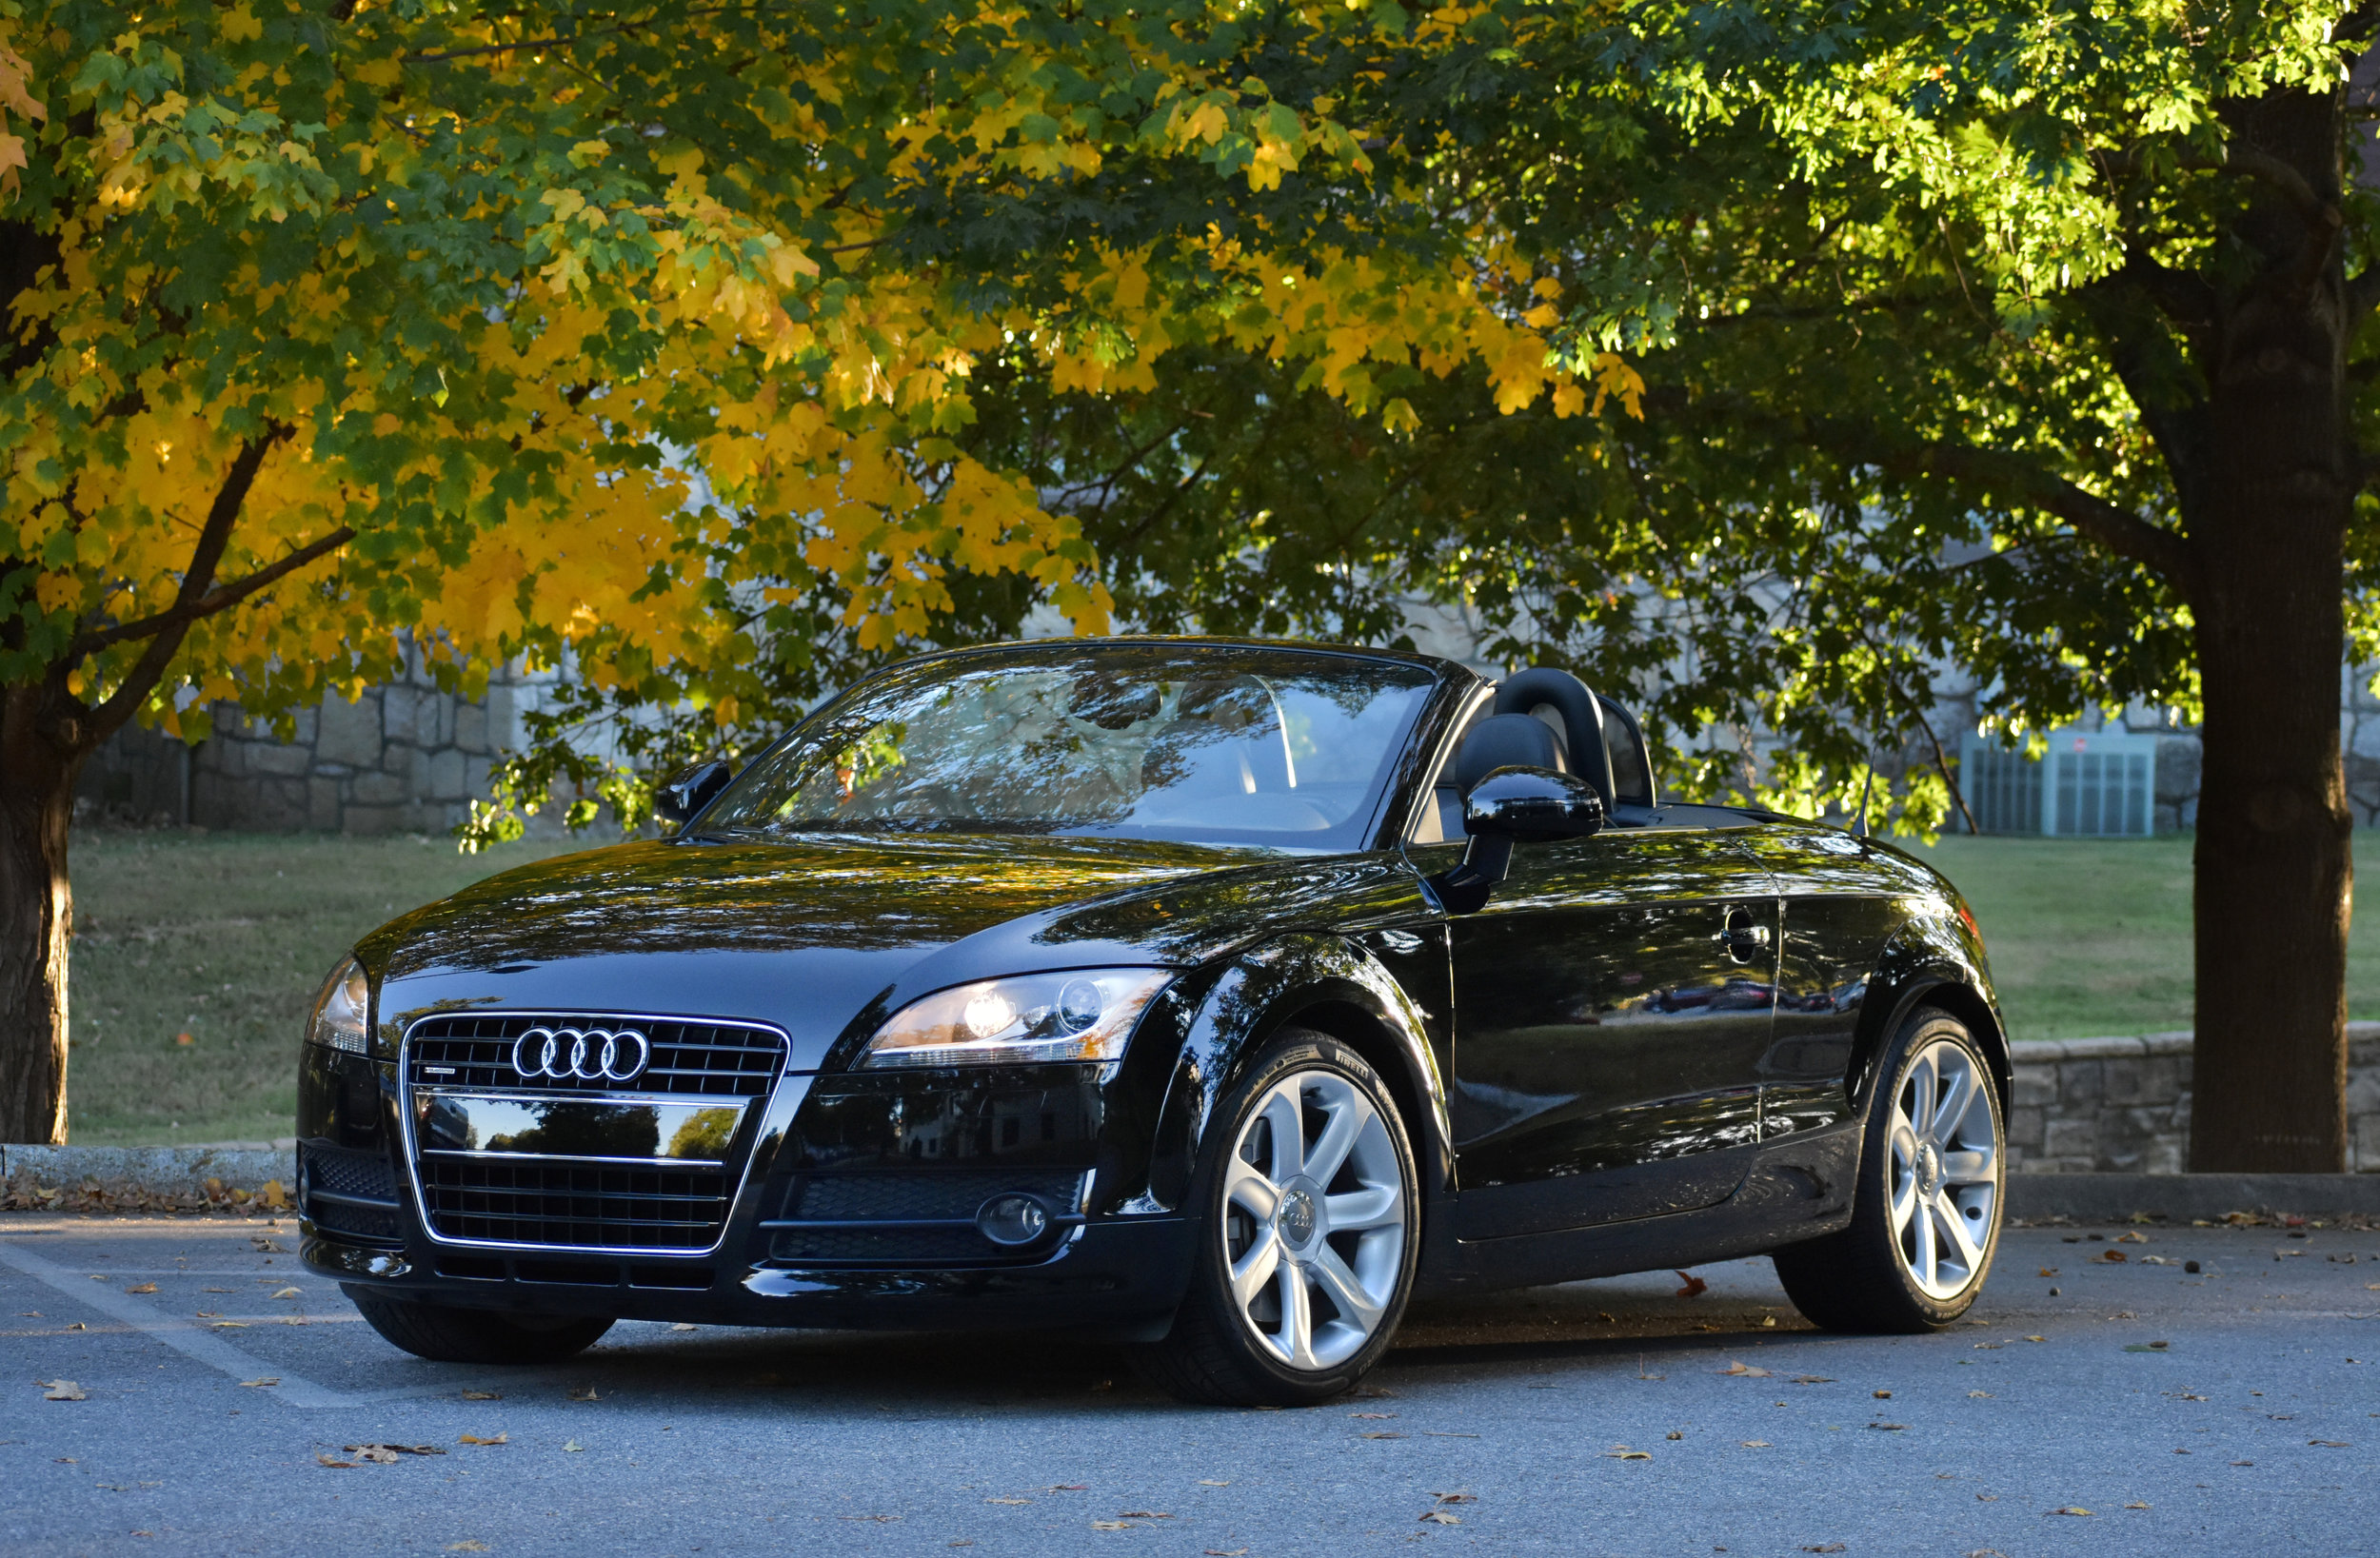 - YEAR:  2008MAKE:  AudiMODEL:  TT 3.2 QVIN:  TRURD38J781002902EXTERIOR:  BlackINTERIOR:  Black LeatherODOMETER: 5,910 miles